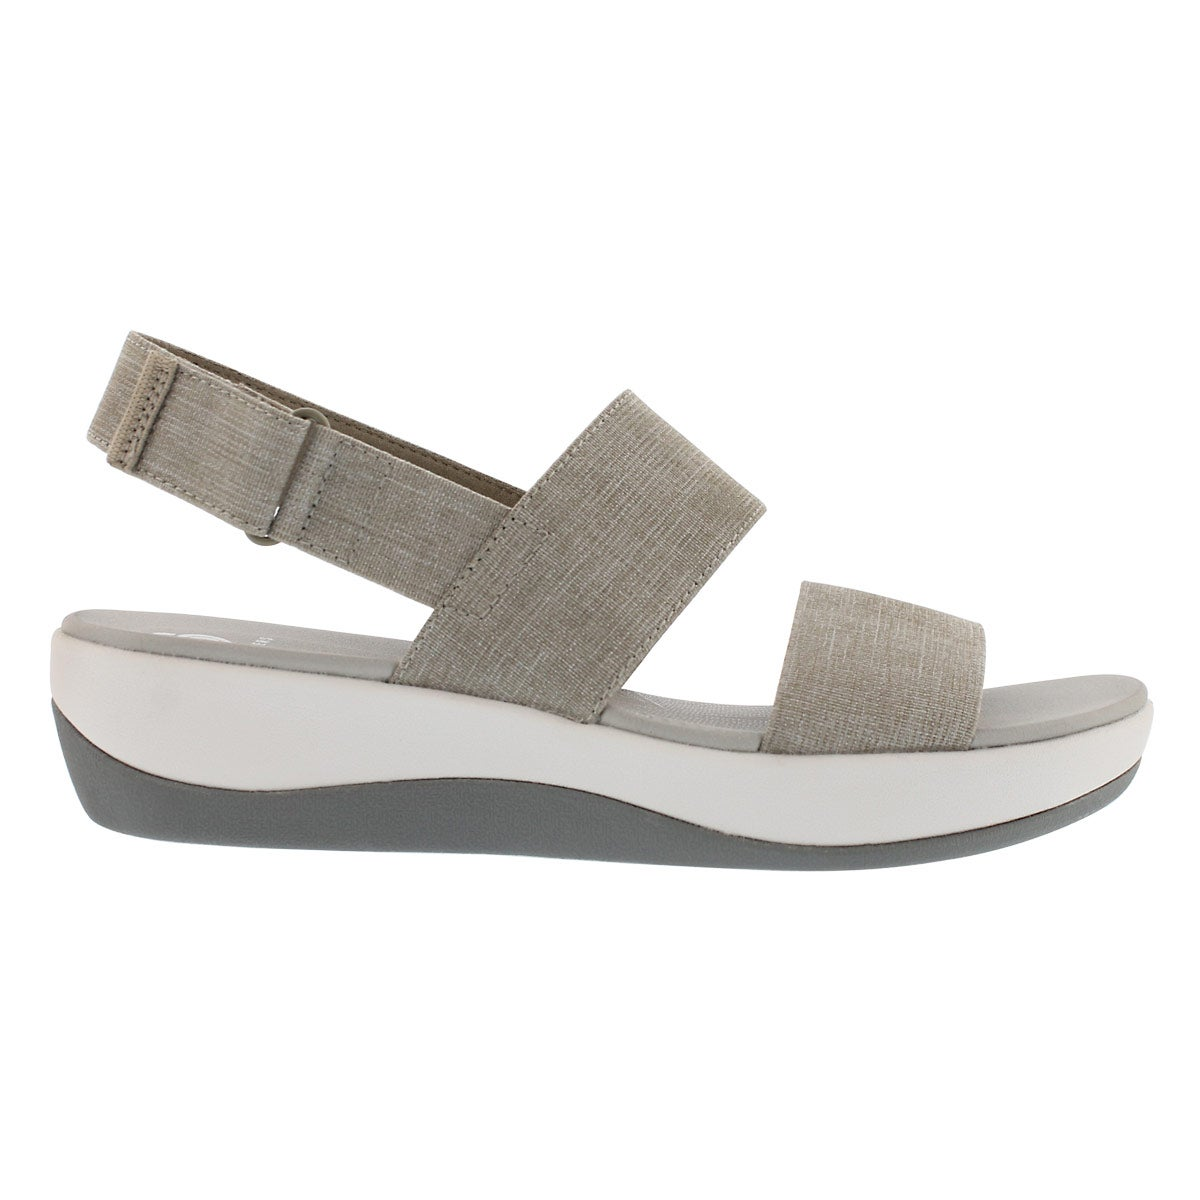 Lds Arla Jacory desert wedge sandal